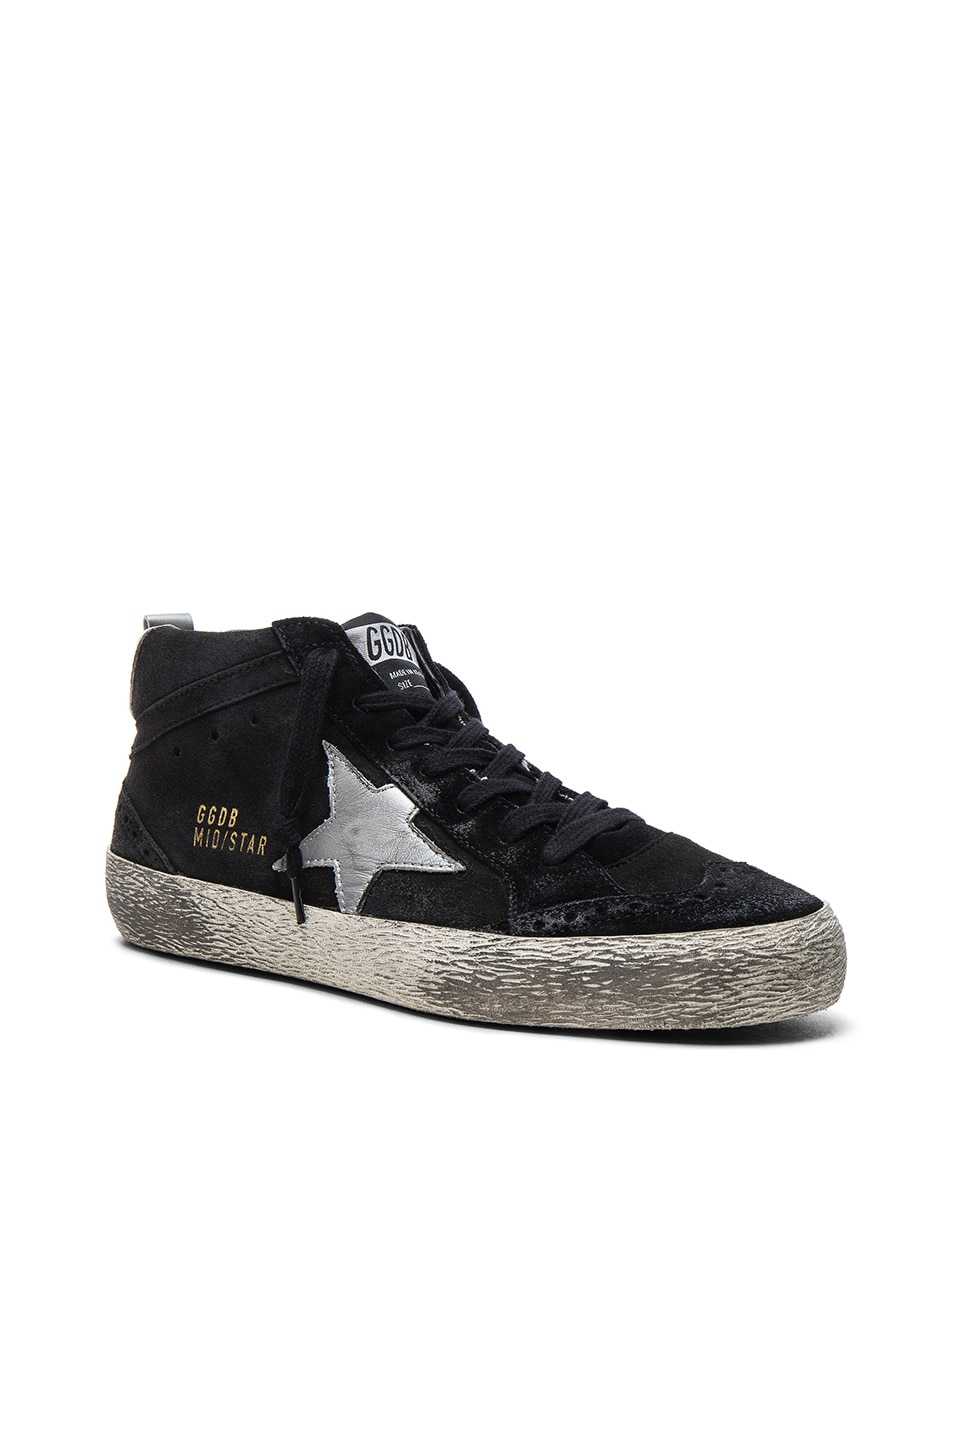 462c87949555 Image 2 of Golden Goose Suede Mid Star Sneakers in Black   Silver